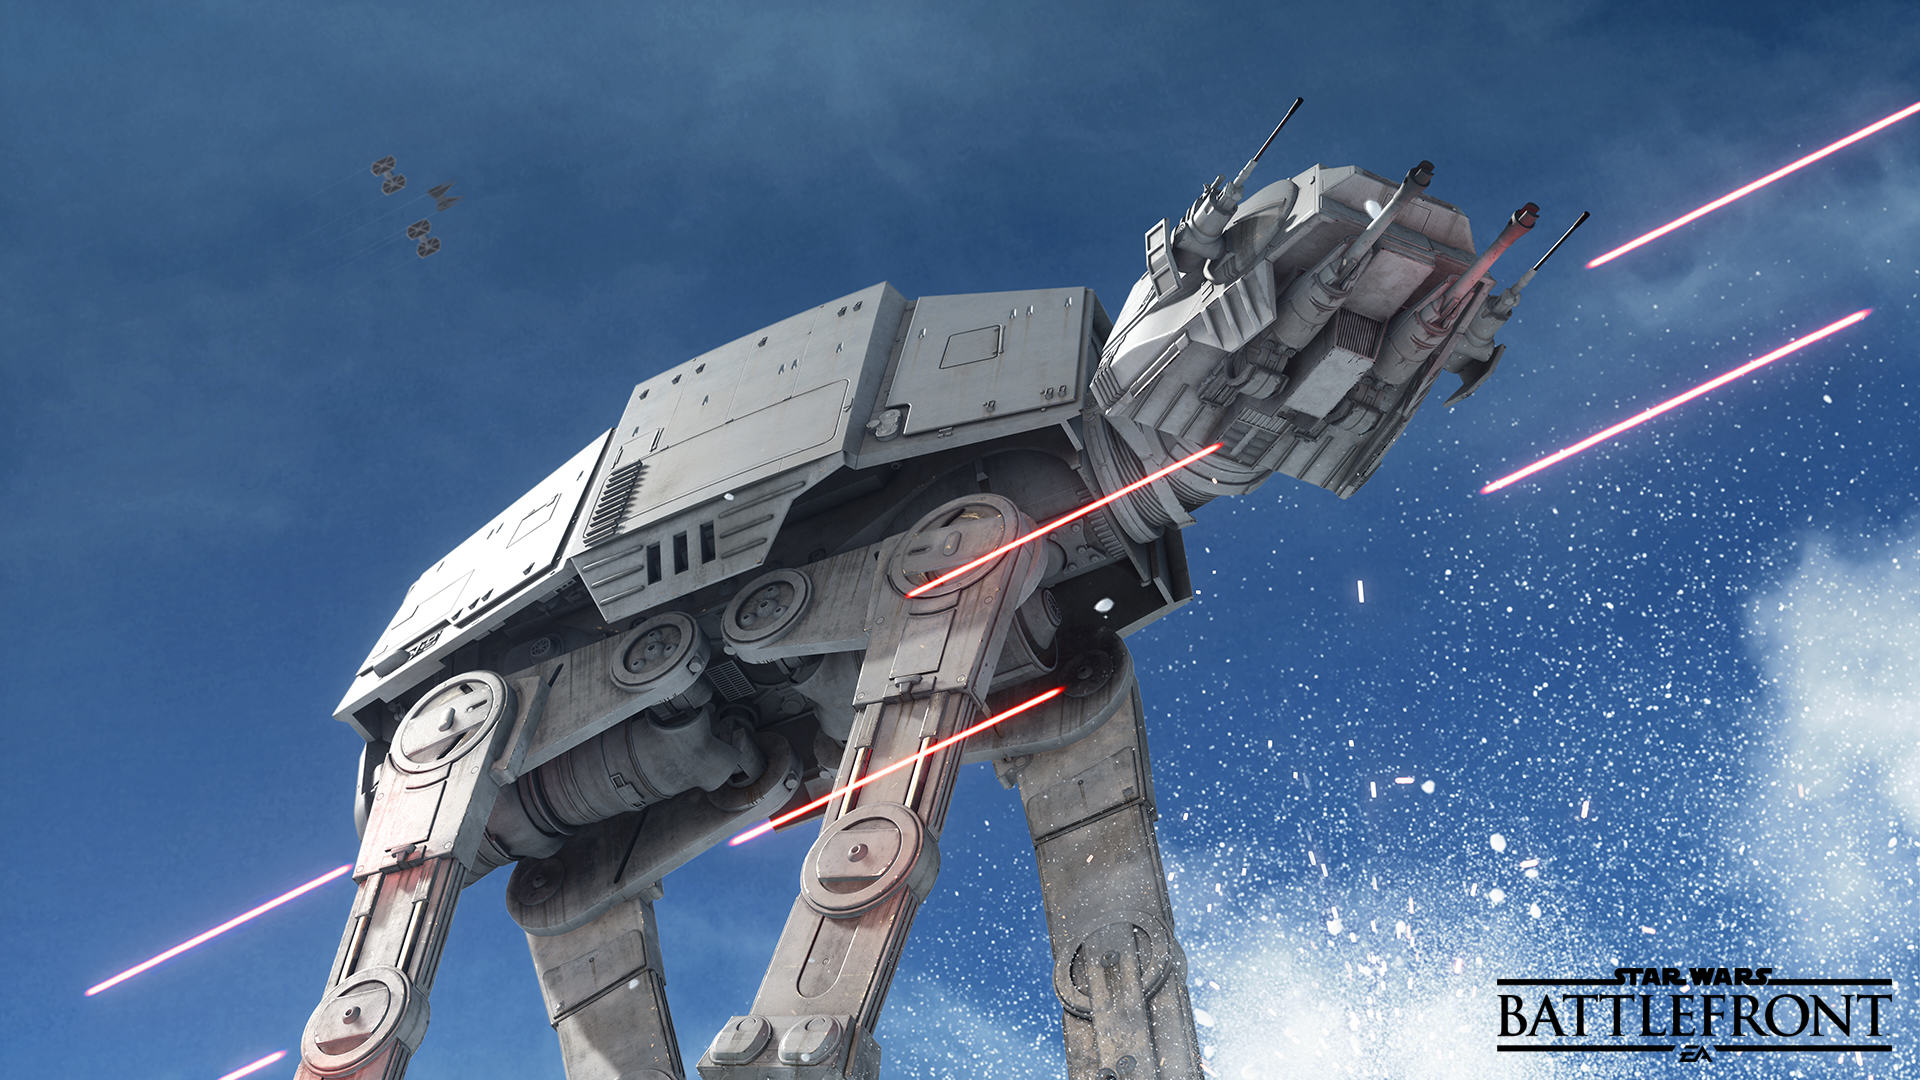 UNILAD 46UJMX0 Imgur2 Star Wars: Battlefront Looks Stunning In These Desktop Backgrounds And Images